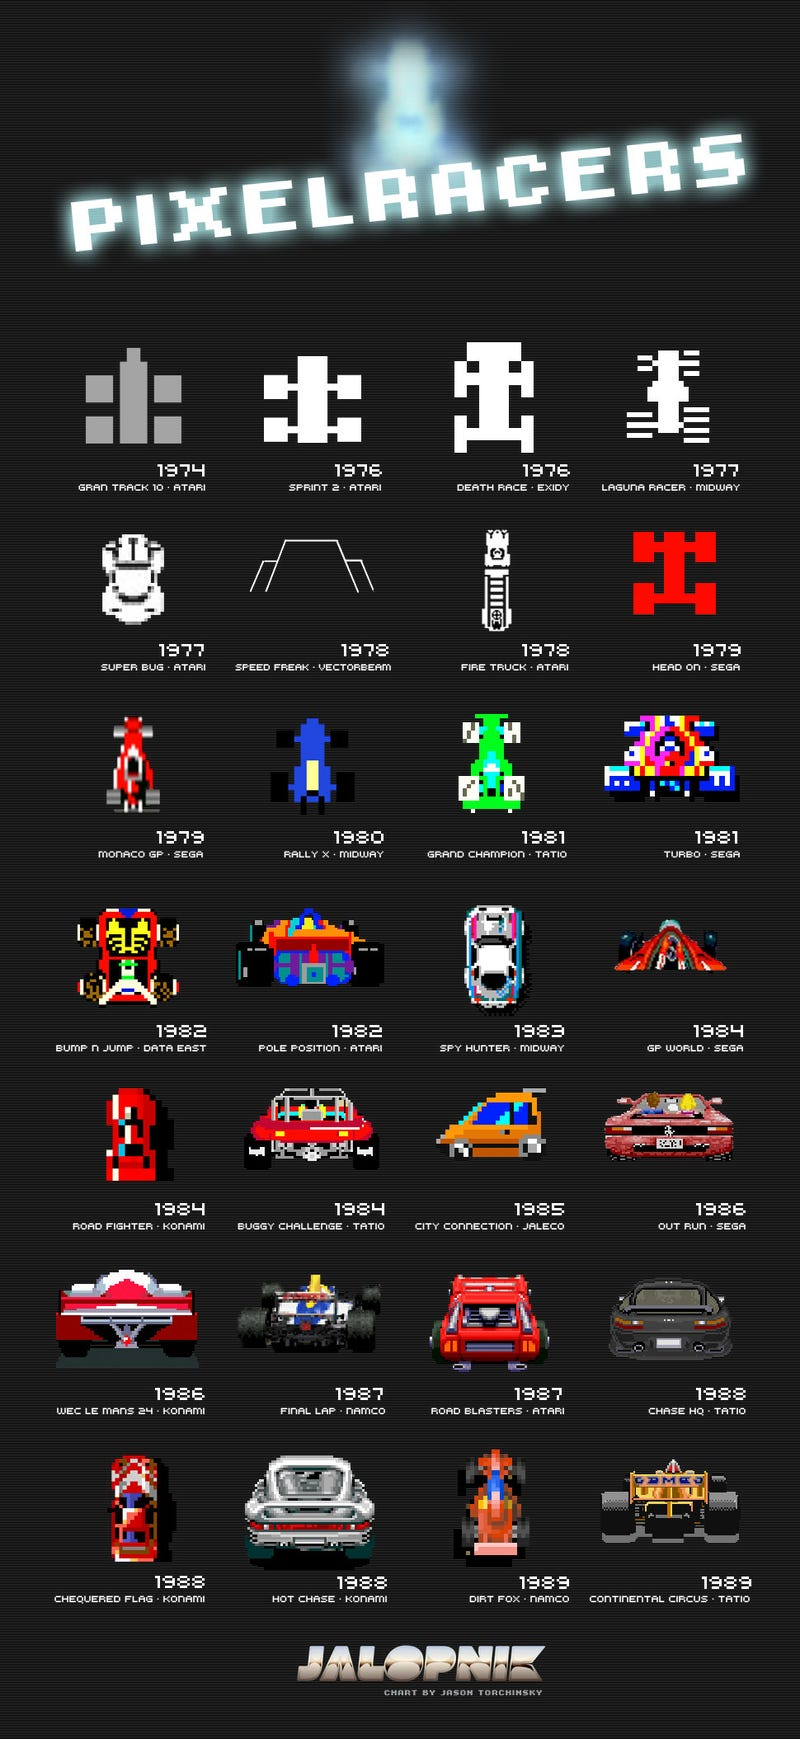 Here's A Big Poster With All The Best 8-Bit Video Game Cars